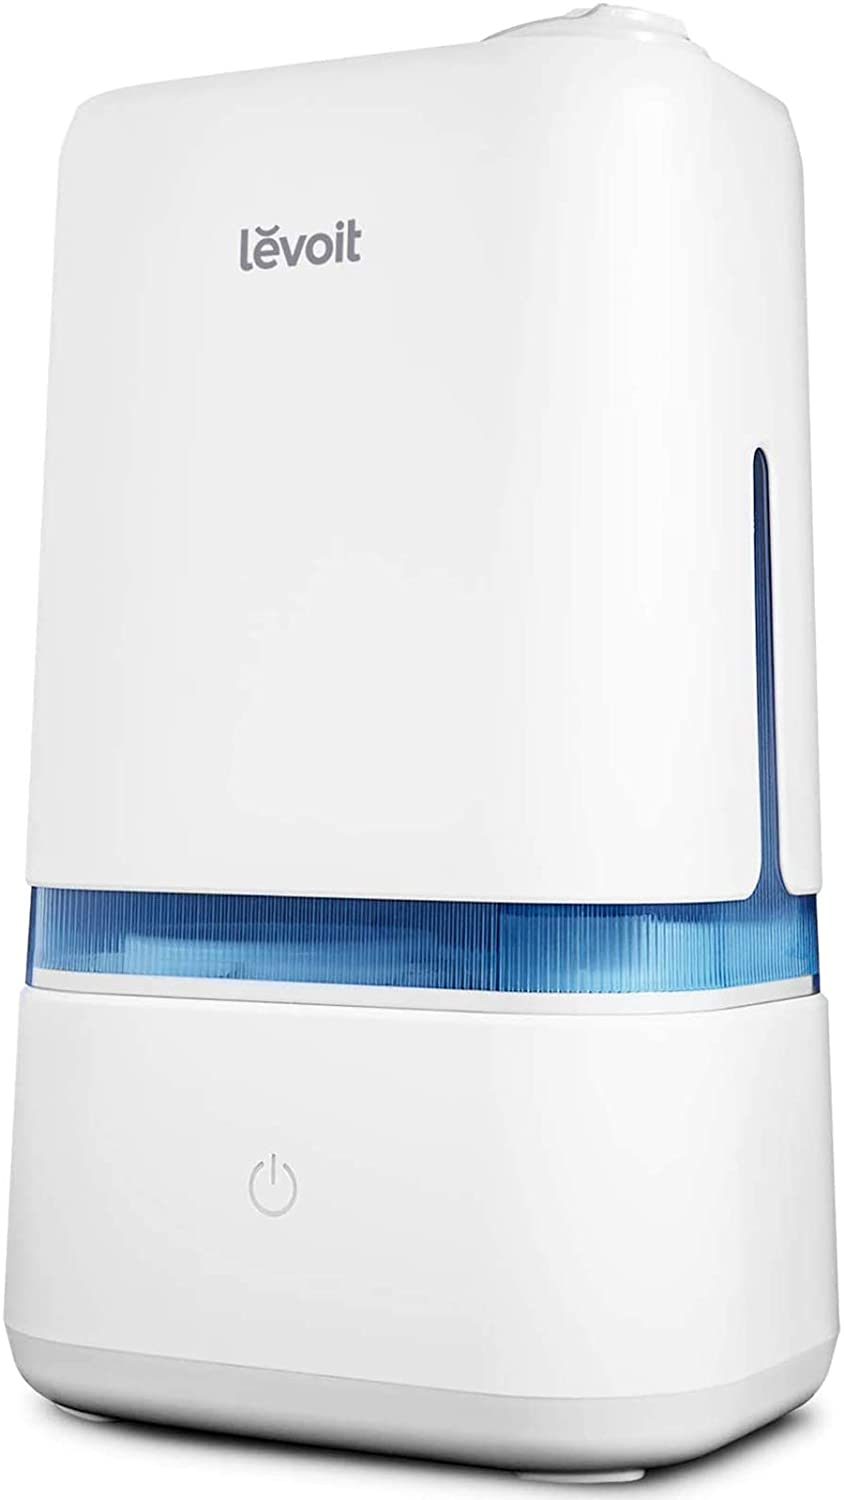 LEVOIT Best Baby Humidifiers for Bedroom